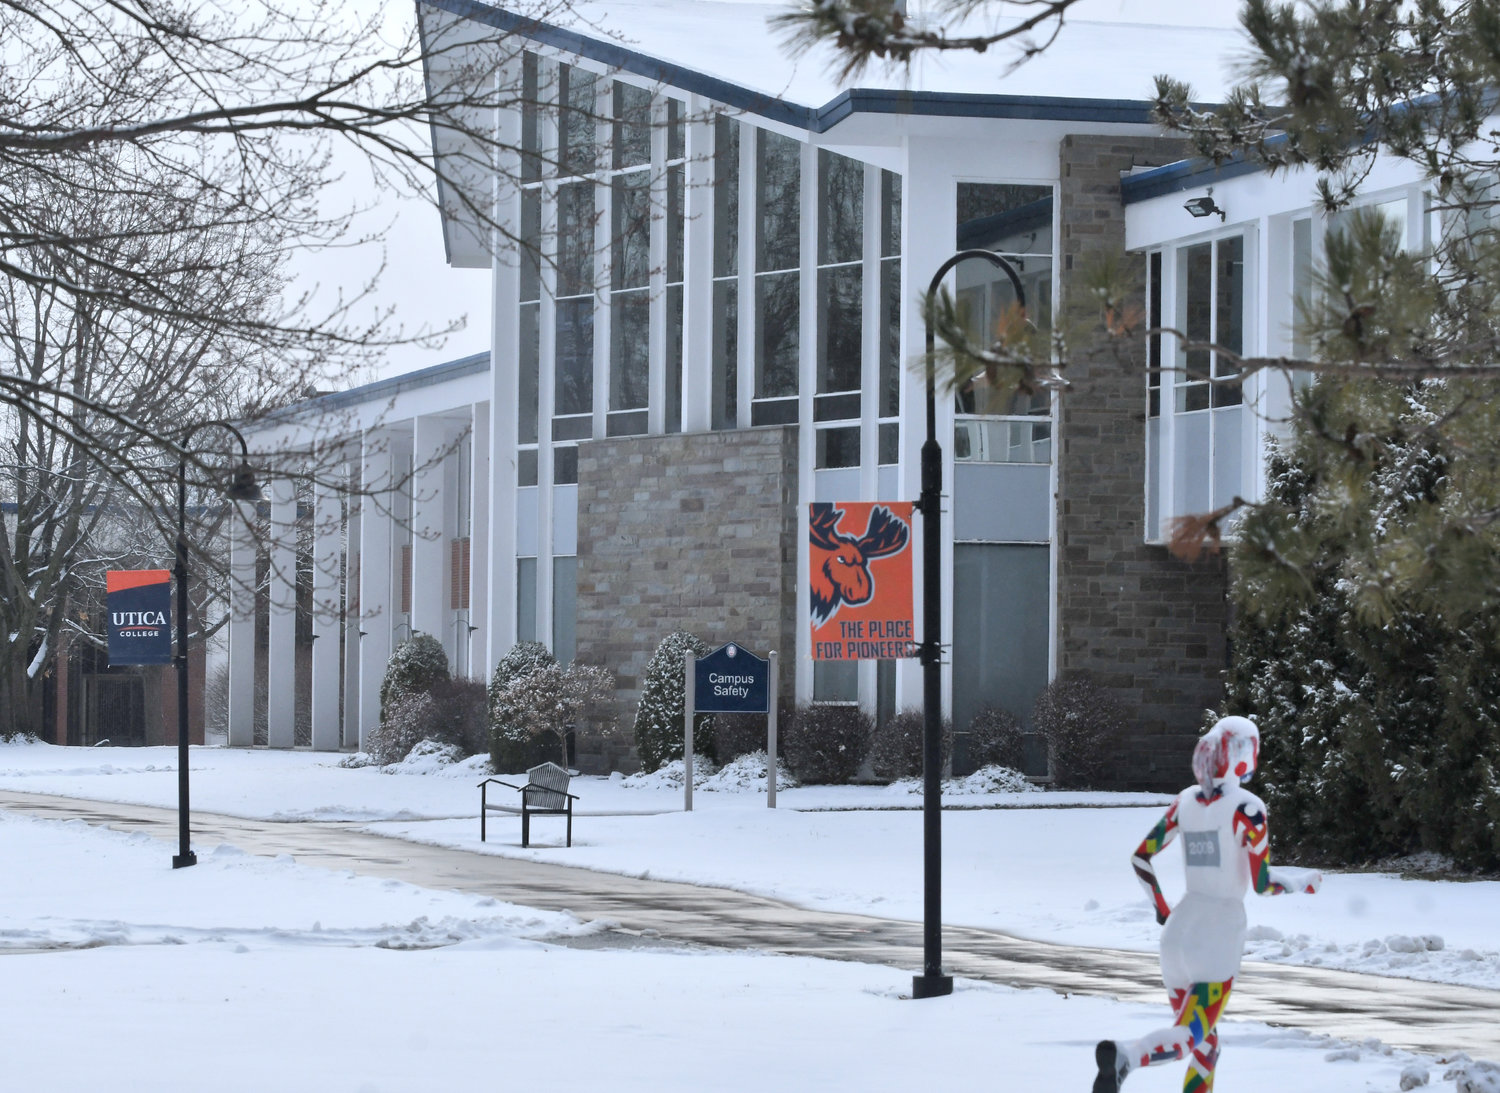 UC CAMPUS — Utica College moves into 2021 with plans including a number of new academic initiatives as well as further growth in its facilities.